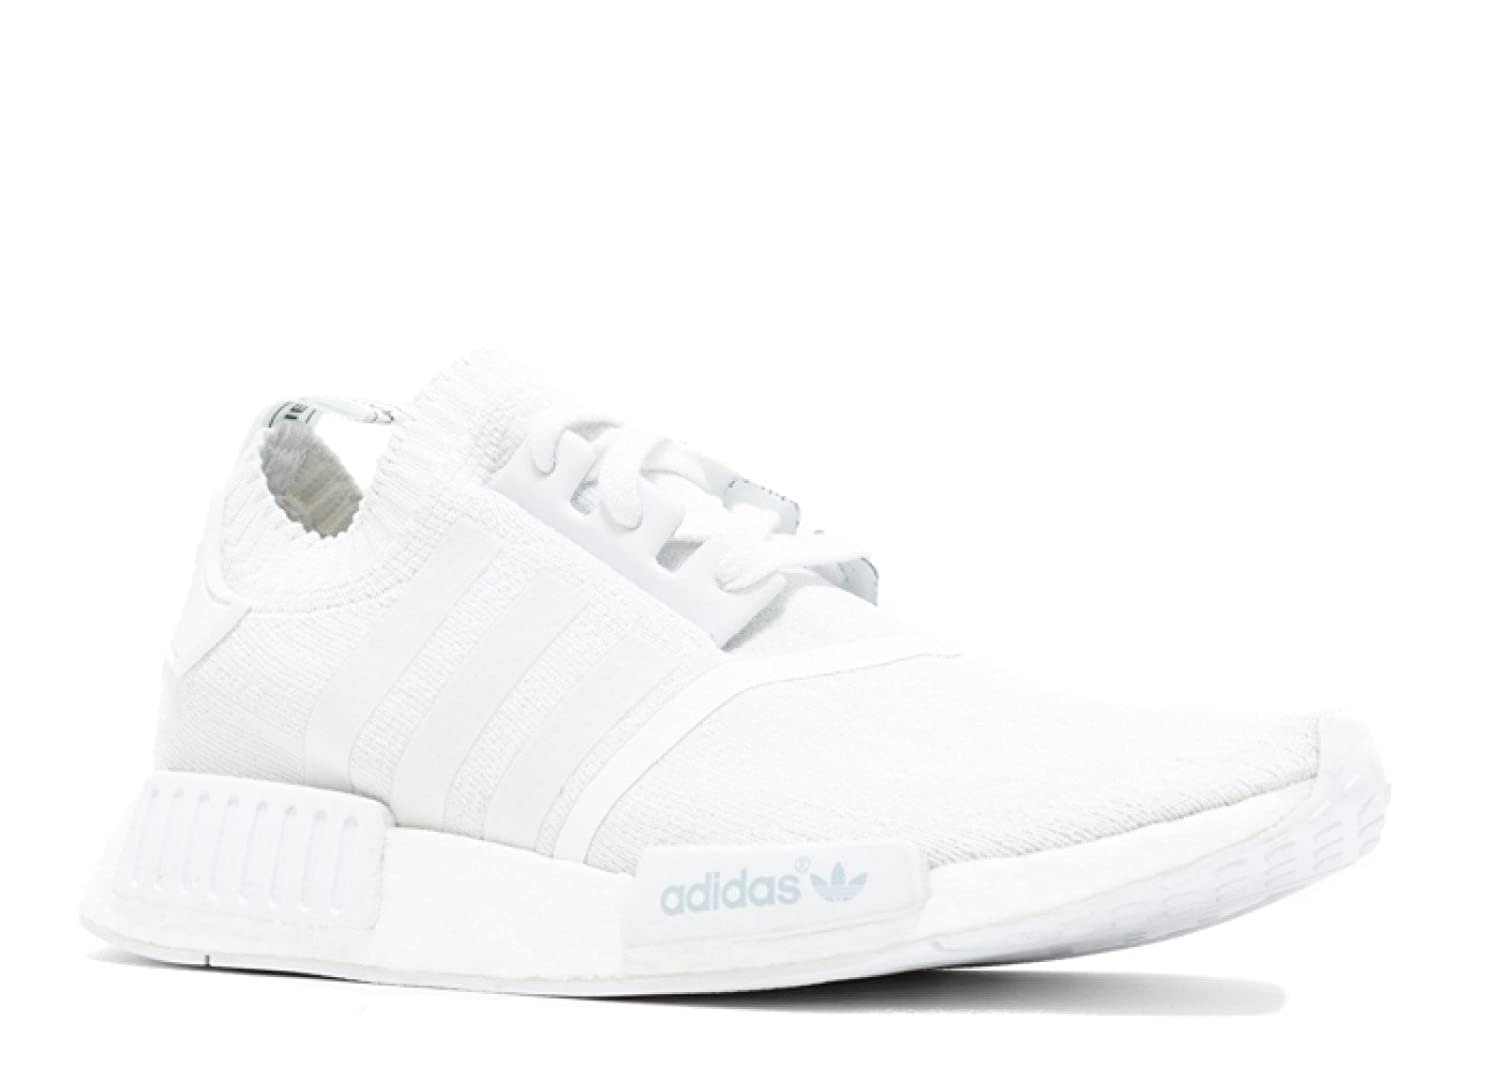 buy popular 9b15f 6dfbc Amazon.com | adidas Mens NMD Runner PK White Size 13 | Running